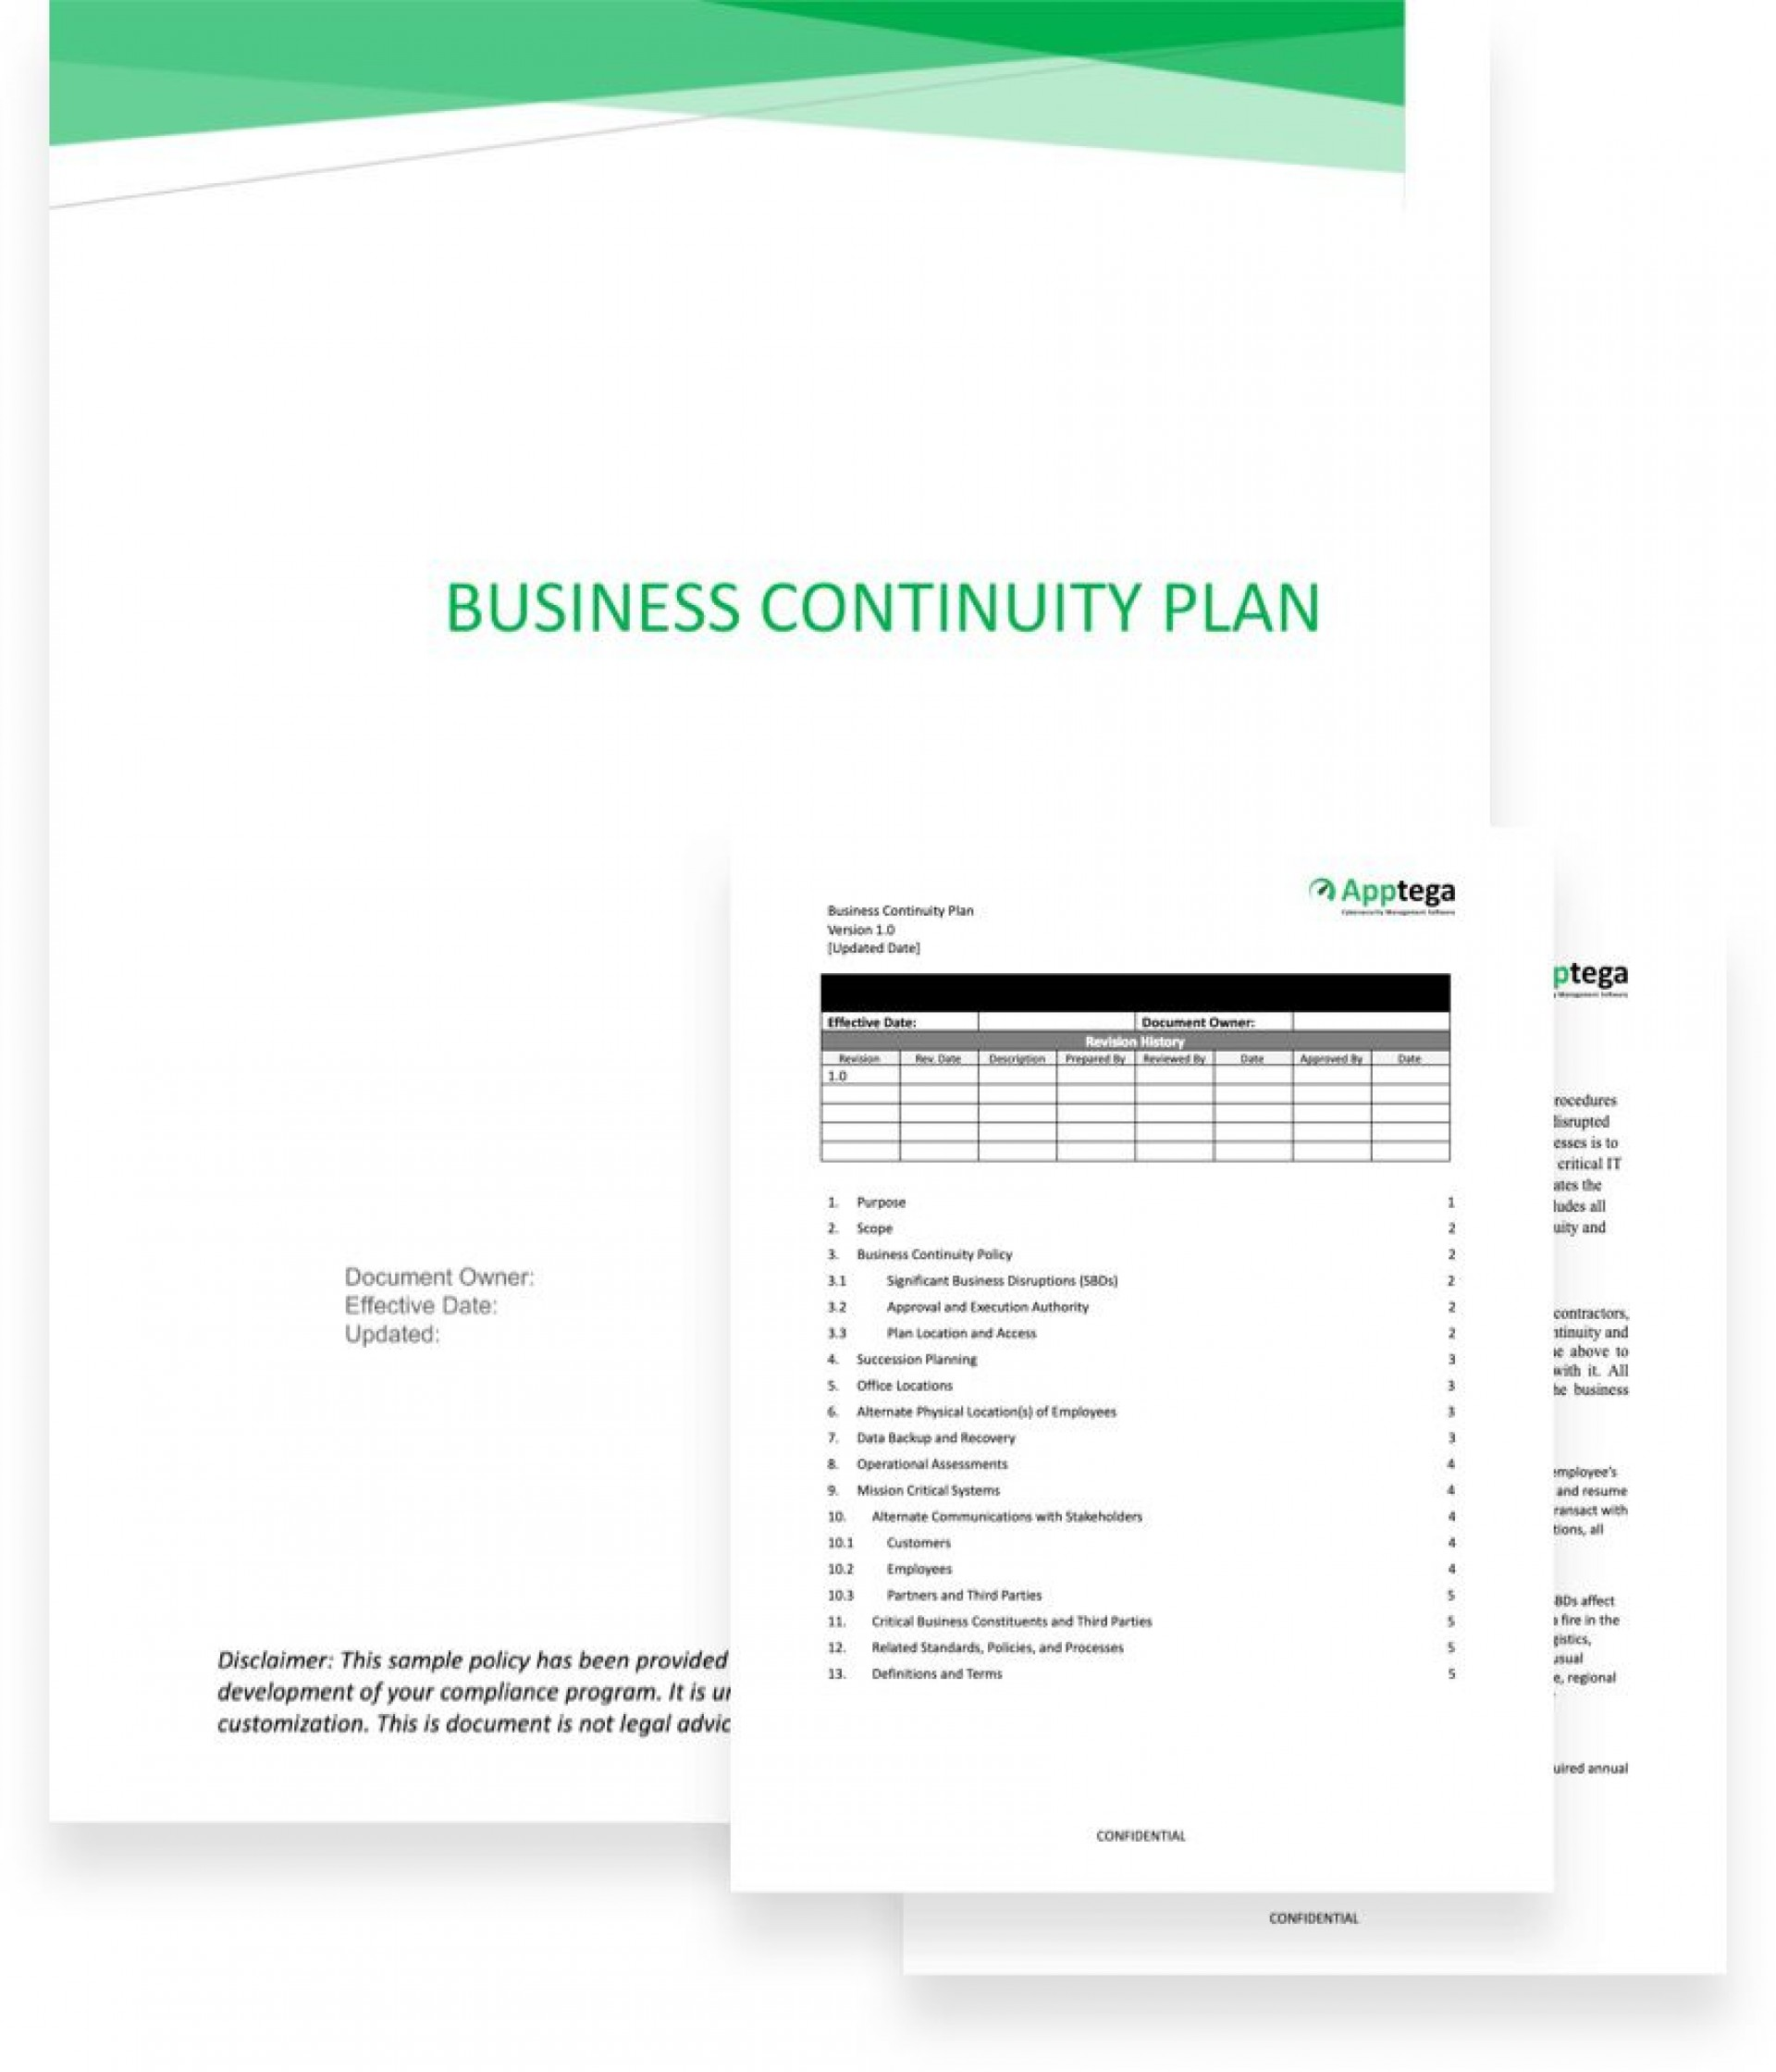 005 Fantastic Simple Busines Continuity Plan Template High Def  Australia Sample For Small Businesse Basic Example1920